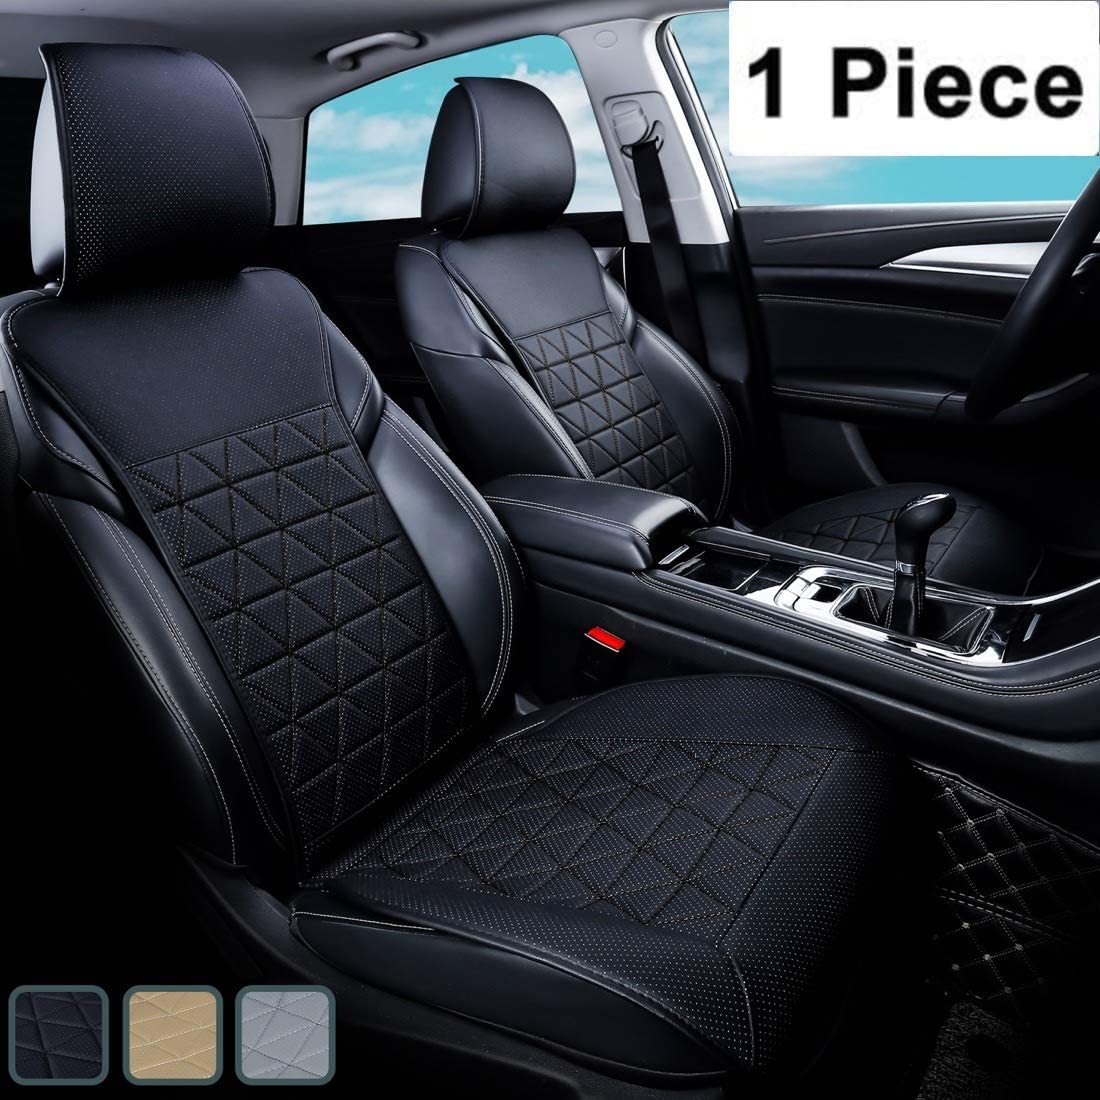 kingphenix Car Seat Cover - 1 Piece - Luxury Leather Car Seat Covers Front Seats Only - Universal Non-Slip Auto Seat Cover for 95% of Car Seats - Black